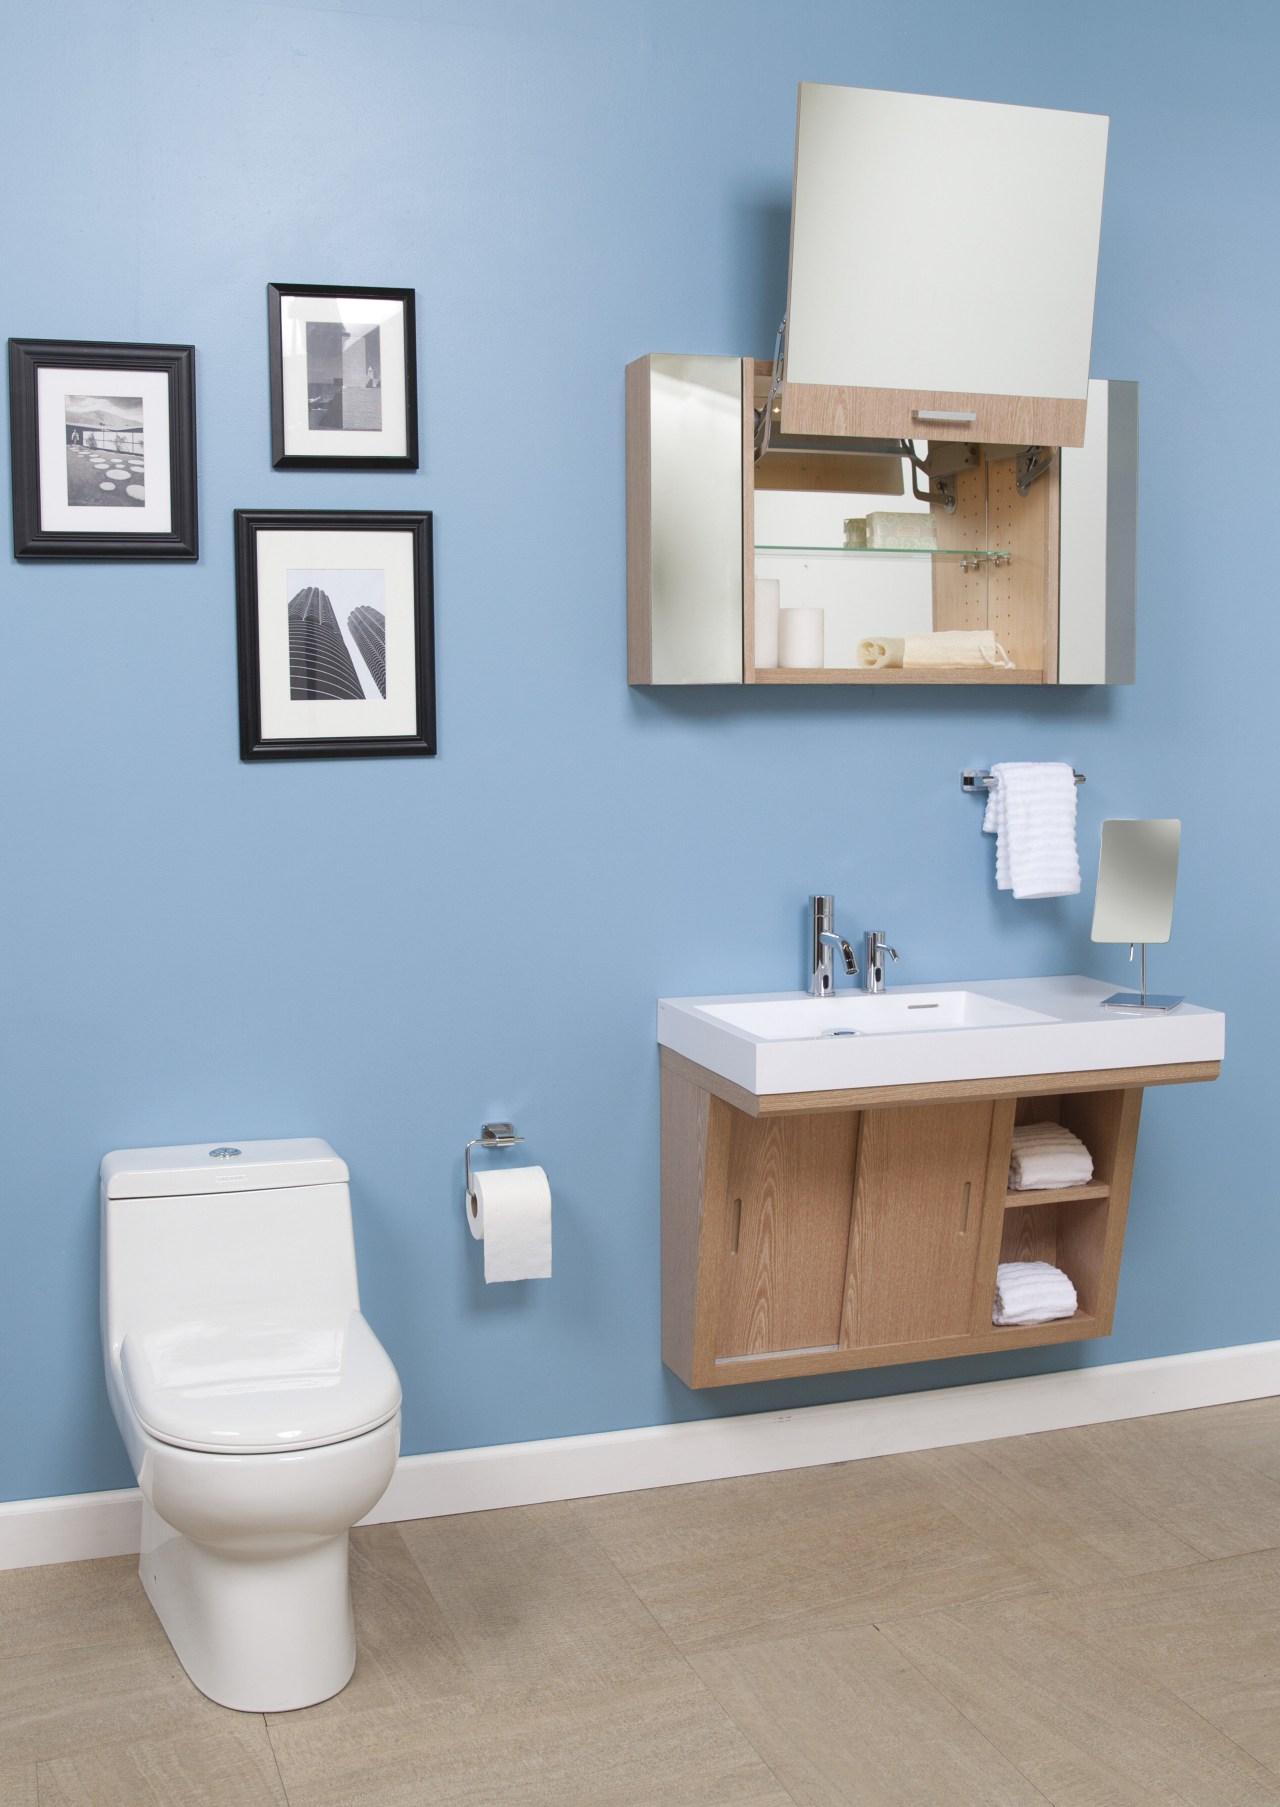 Libera vanities from Lacava are teamed with Zoom bathroom, bathroom accessory, bathroom cabinet, bathroom sink, plumbing fixture, product, product design, room, shelf, shelving, sink, tap, toilet, toilet seat, teal